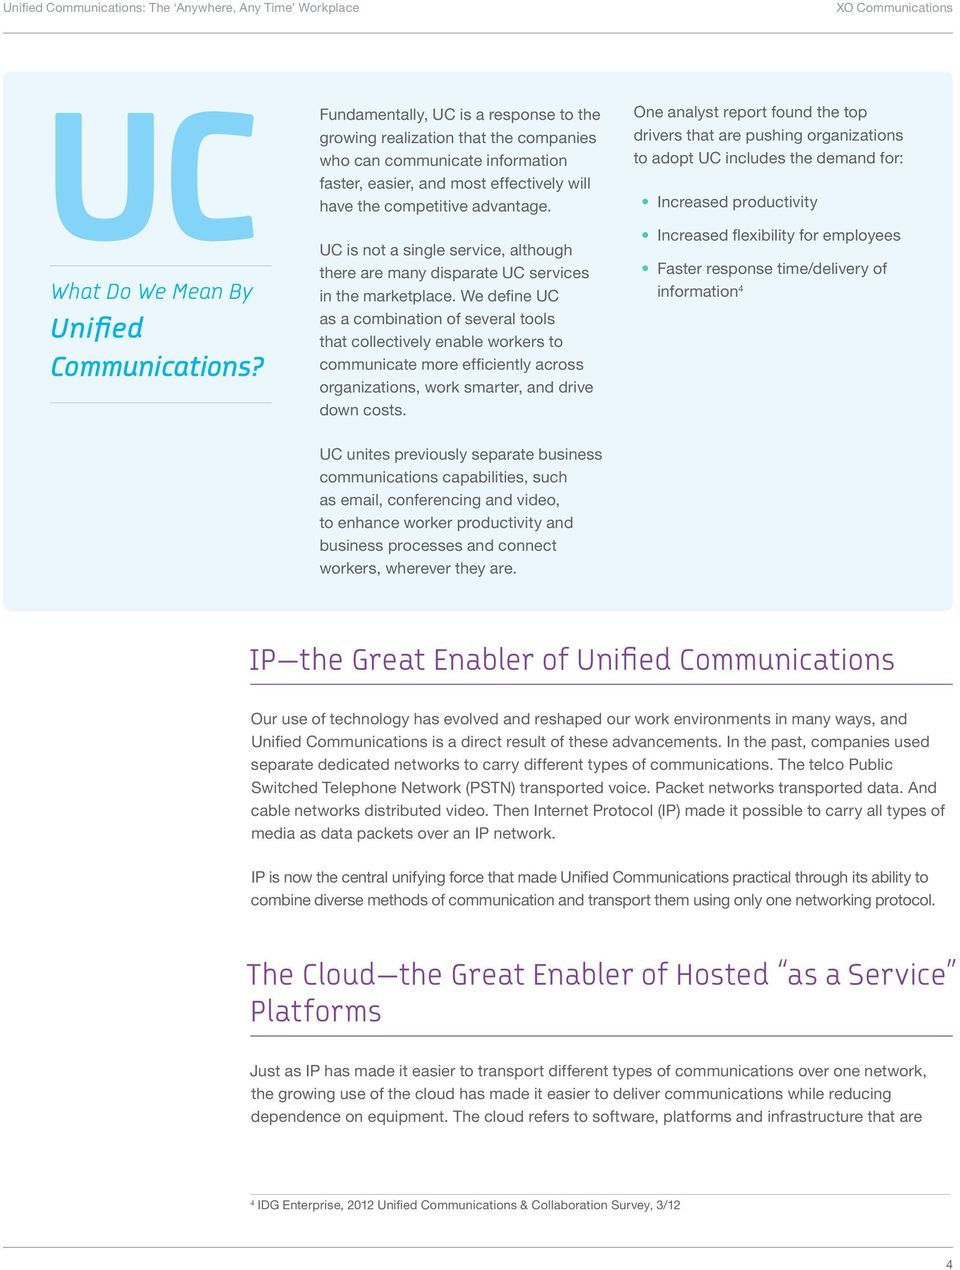 UC is not a single service, although there are many disparate UC services in the marketplace.